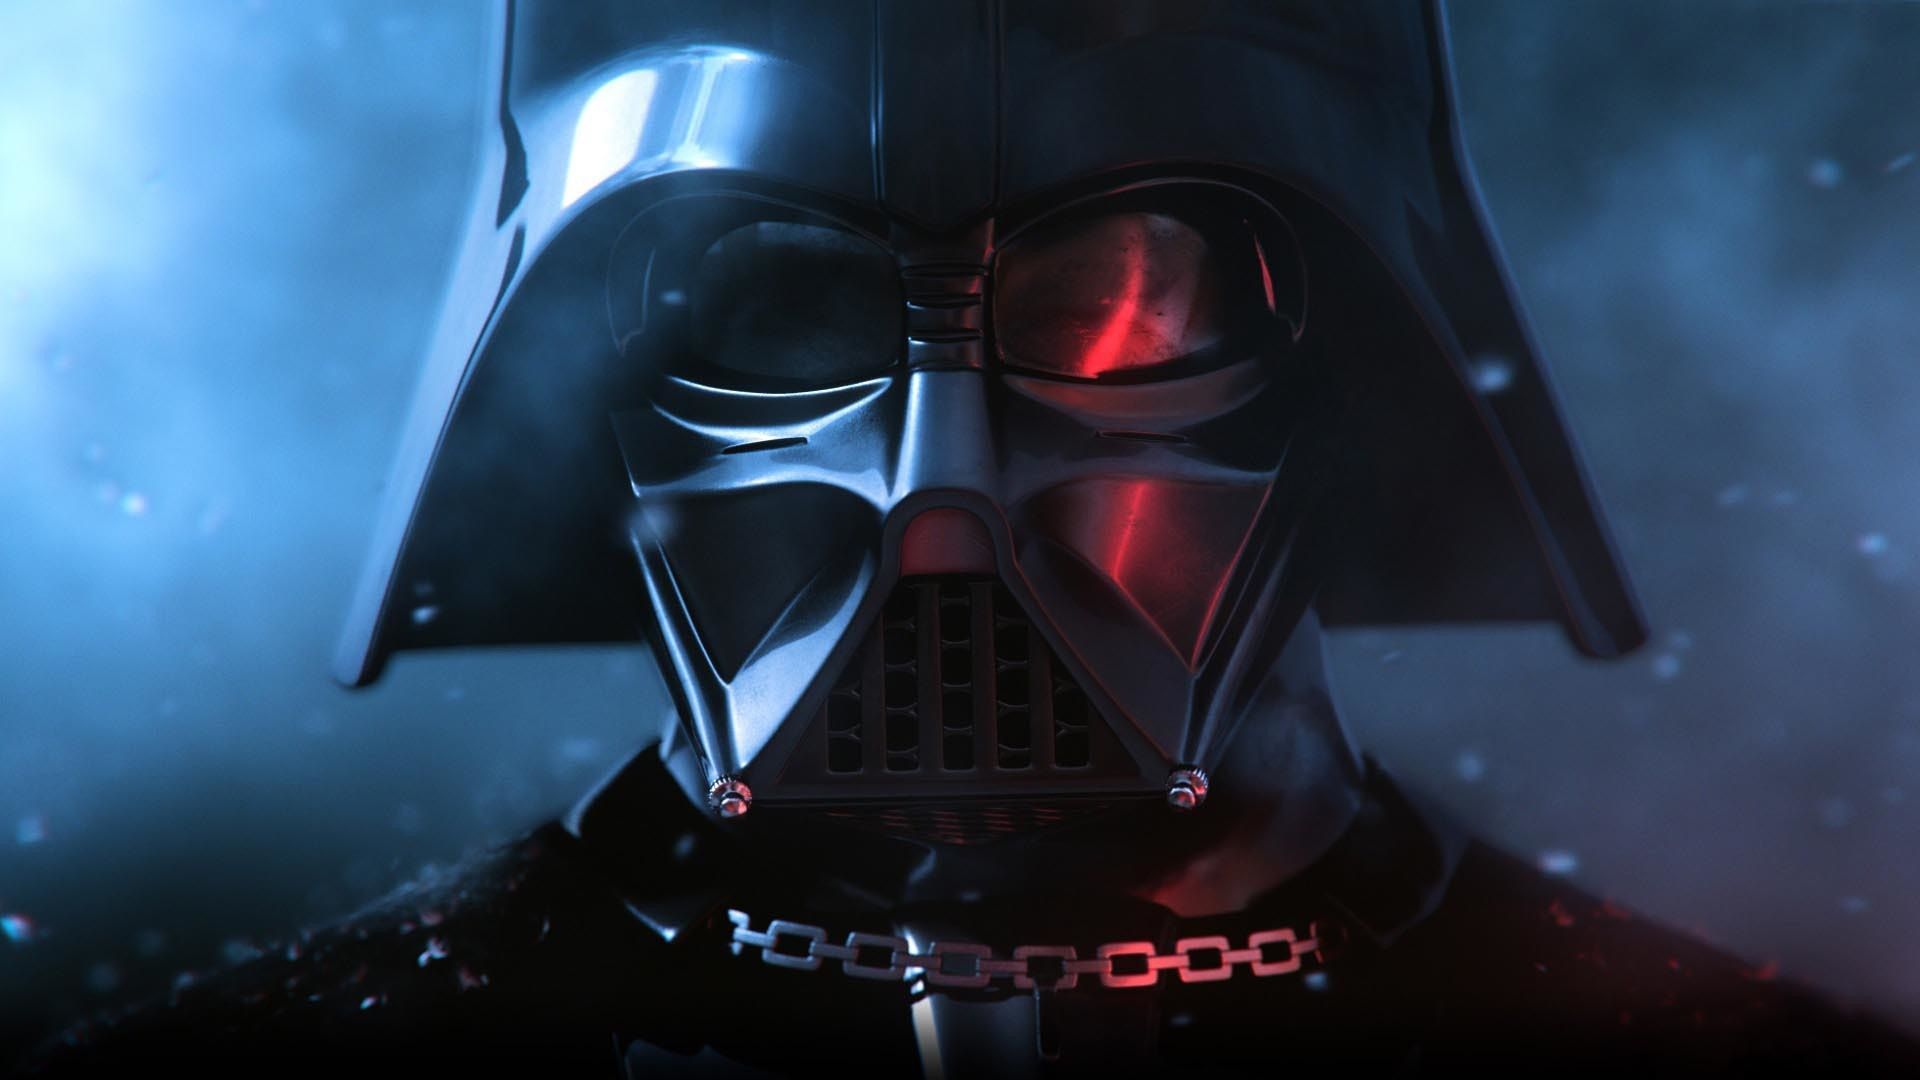 Darth Vader Wallpaper (75+ images)